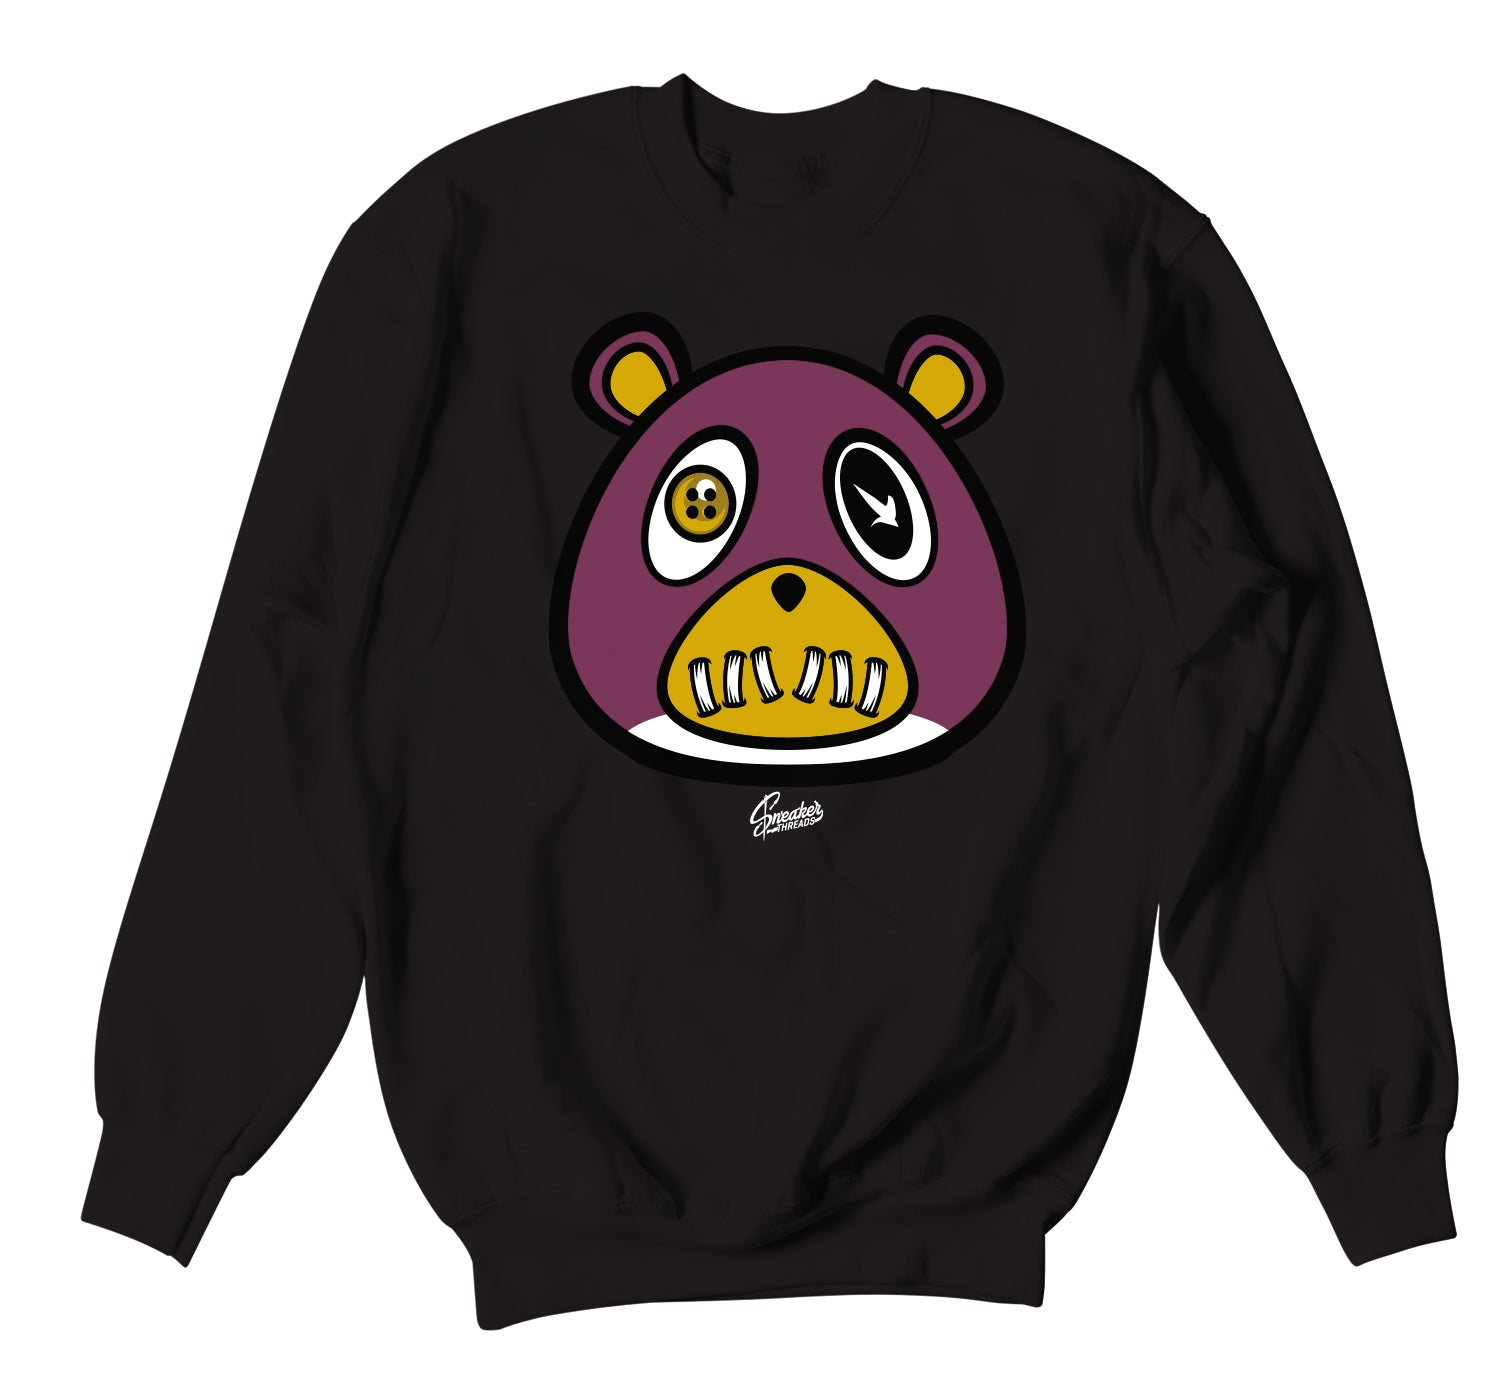 Jordan 6 Singles Day Sweater - ST Bear - Black